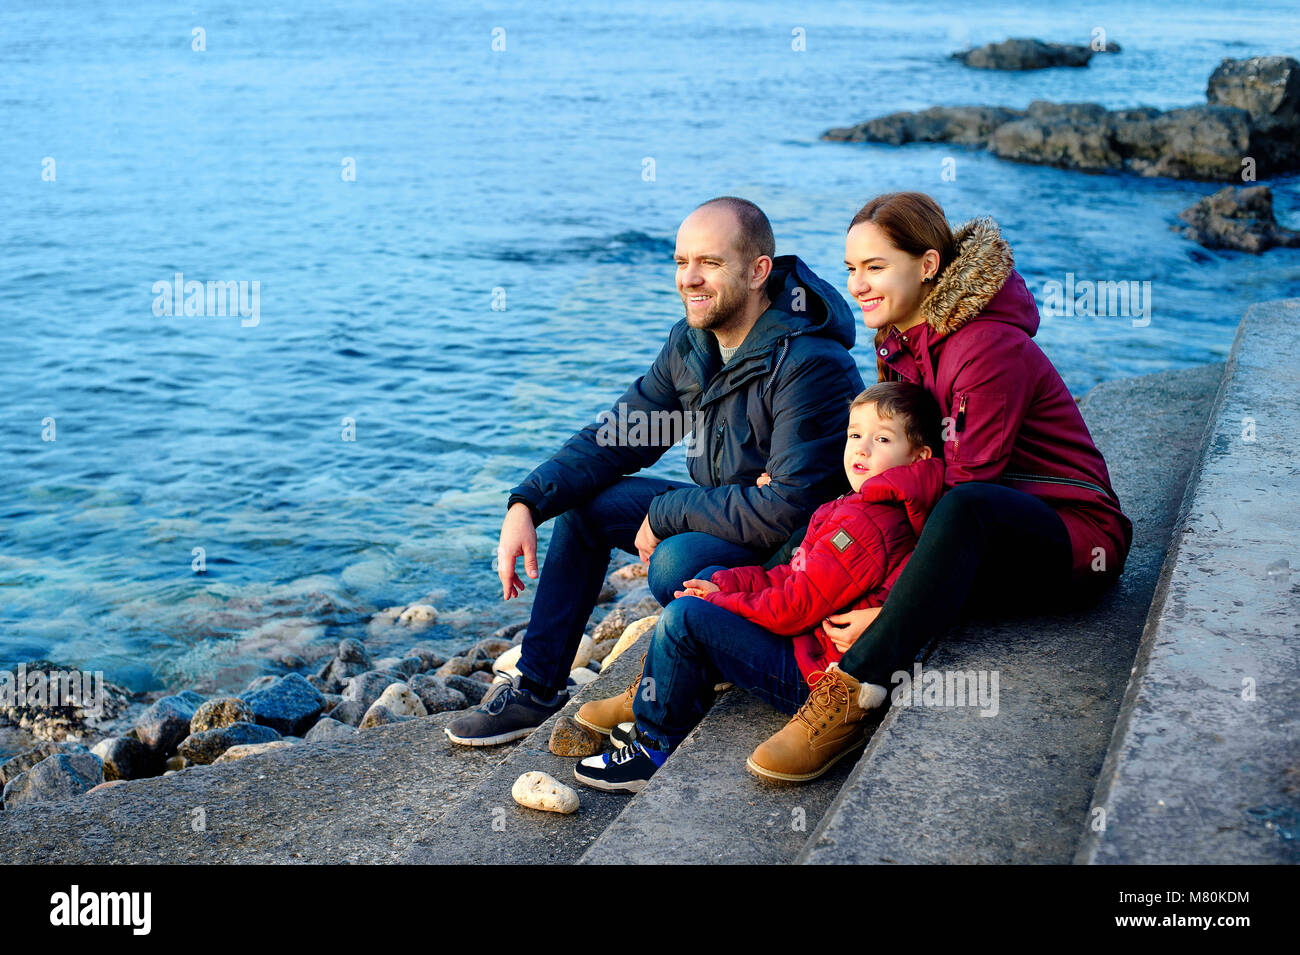 family mom, dad and son are sitting on the beach by the sea and looking into the distance. Season - spring, autumn. - Stock Image